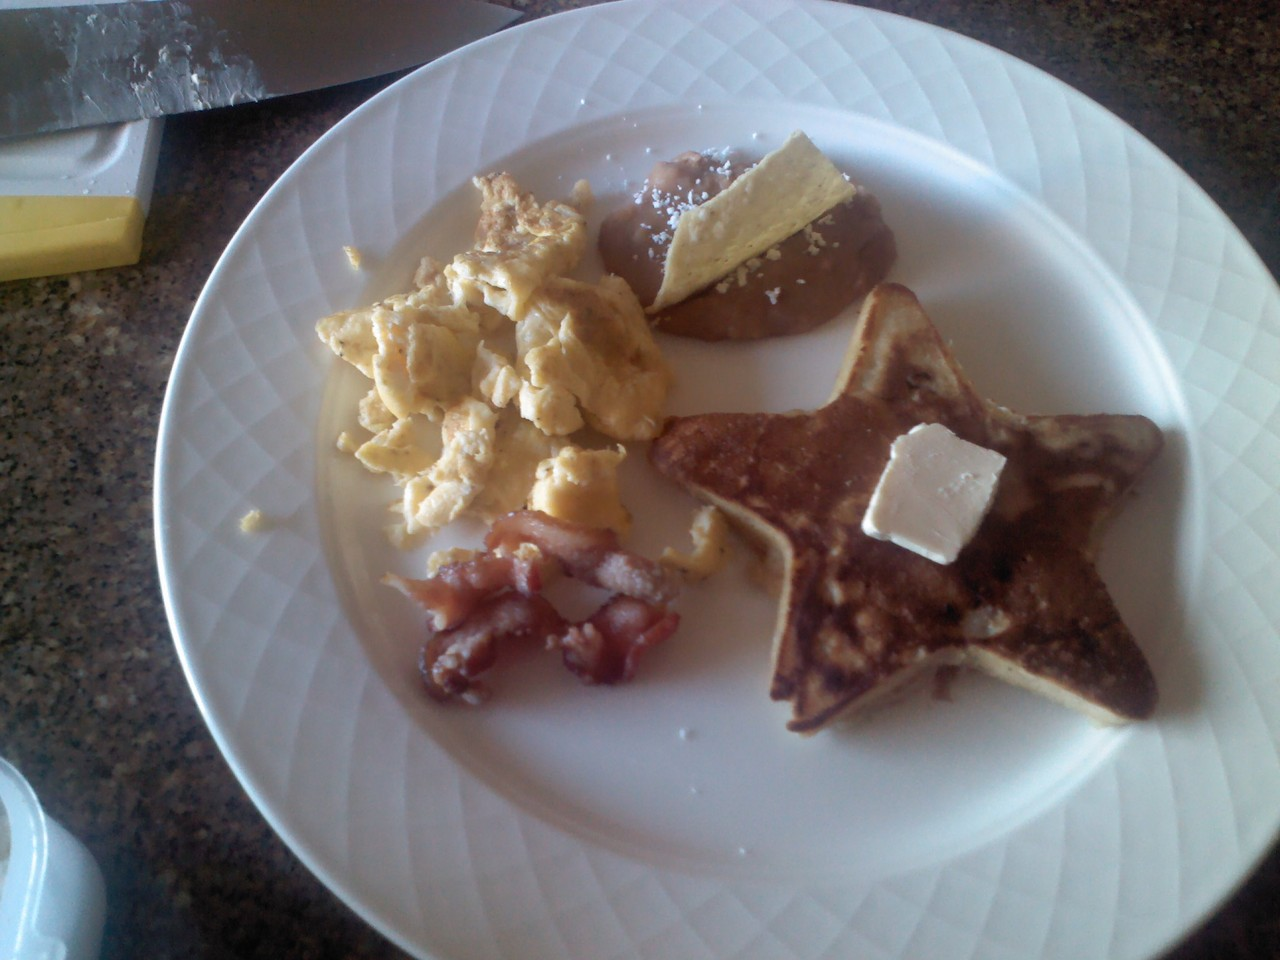 Enjoy a delicious American breakfast. scrambled eggs, pancakes stuffed with banana and walnut. and crispy bacon